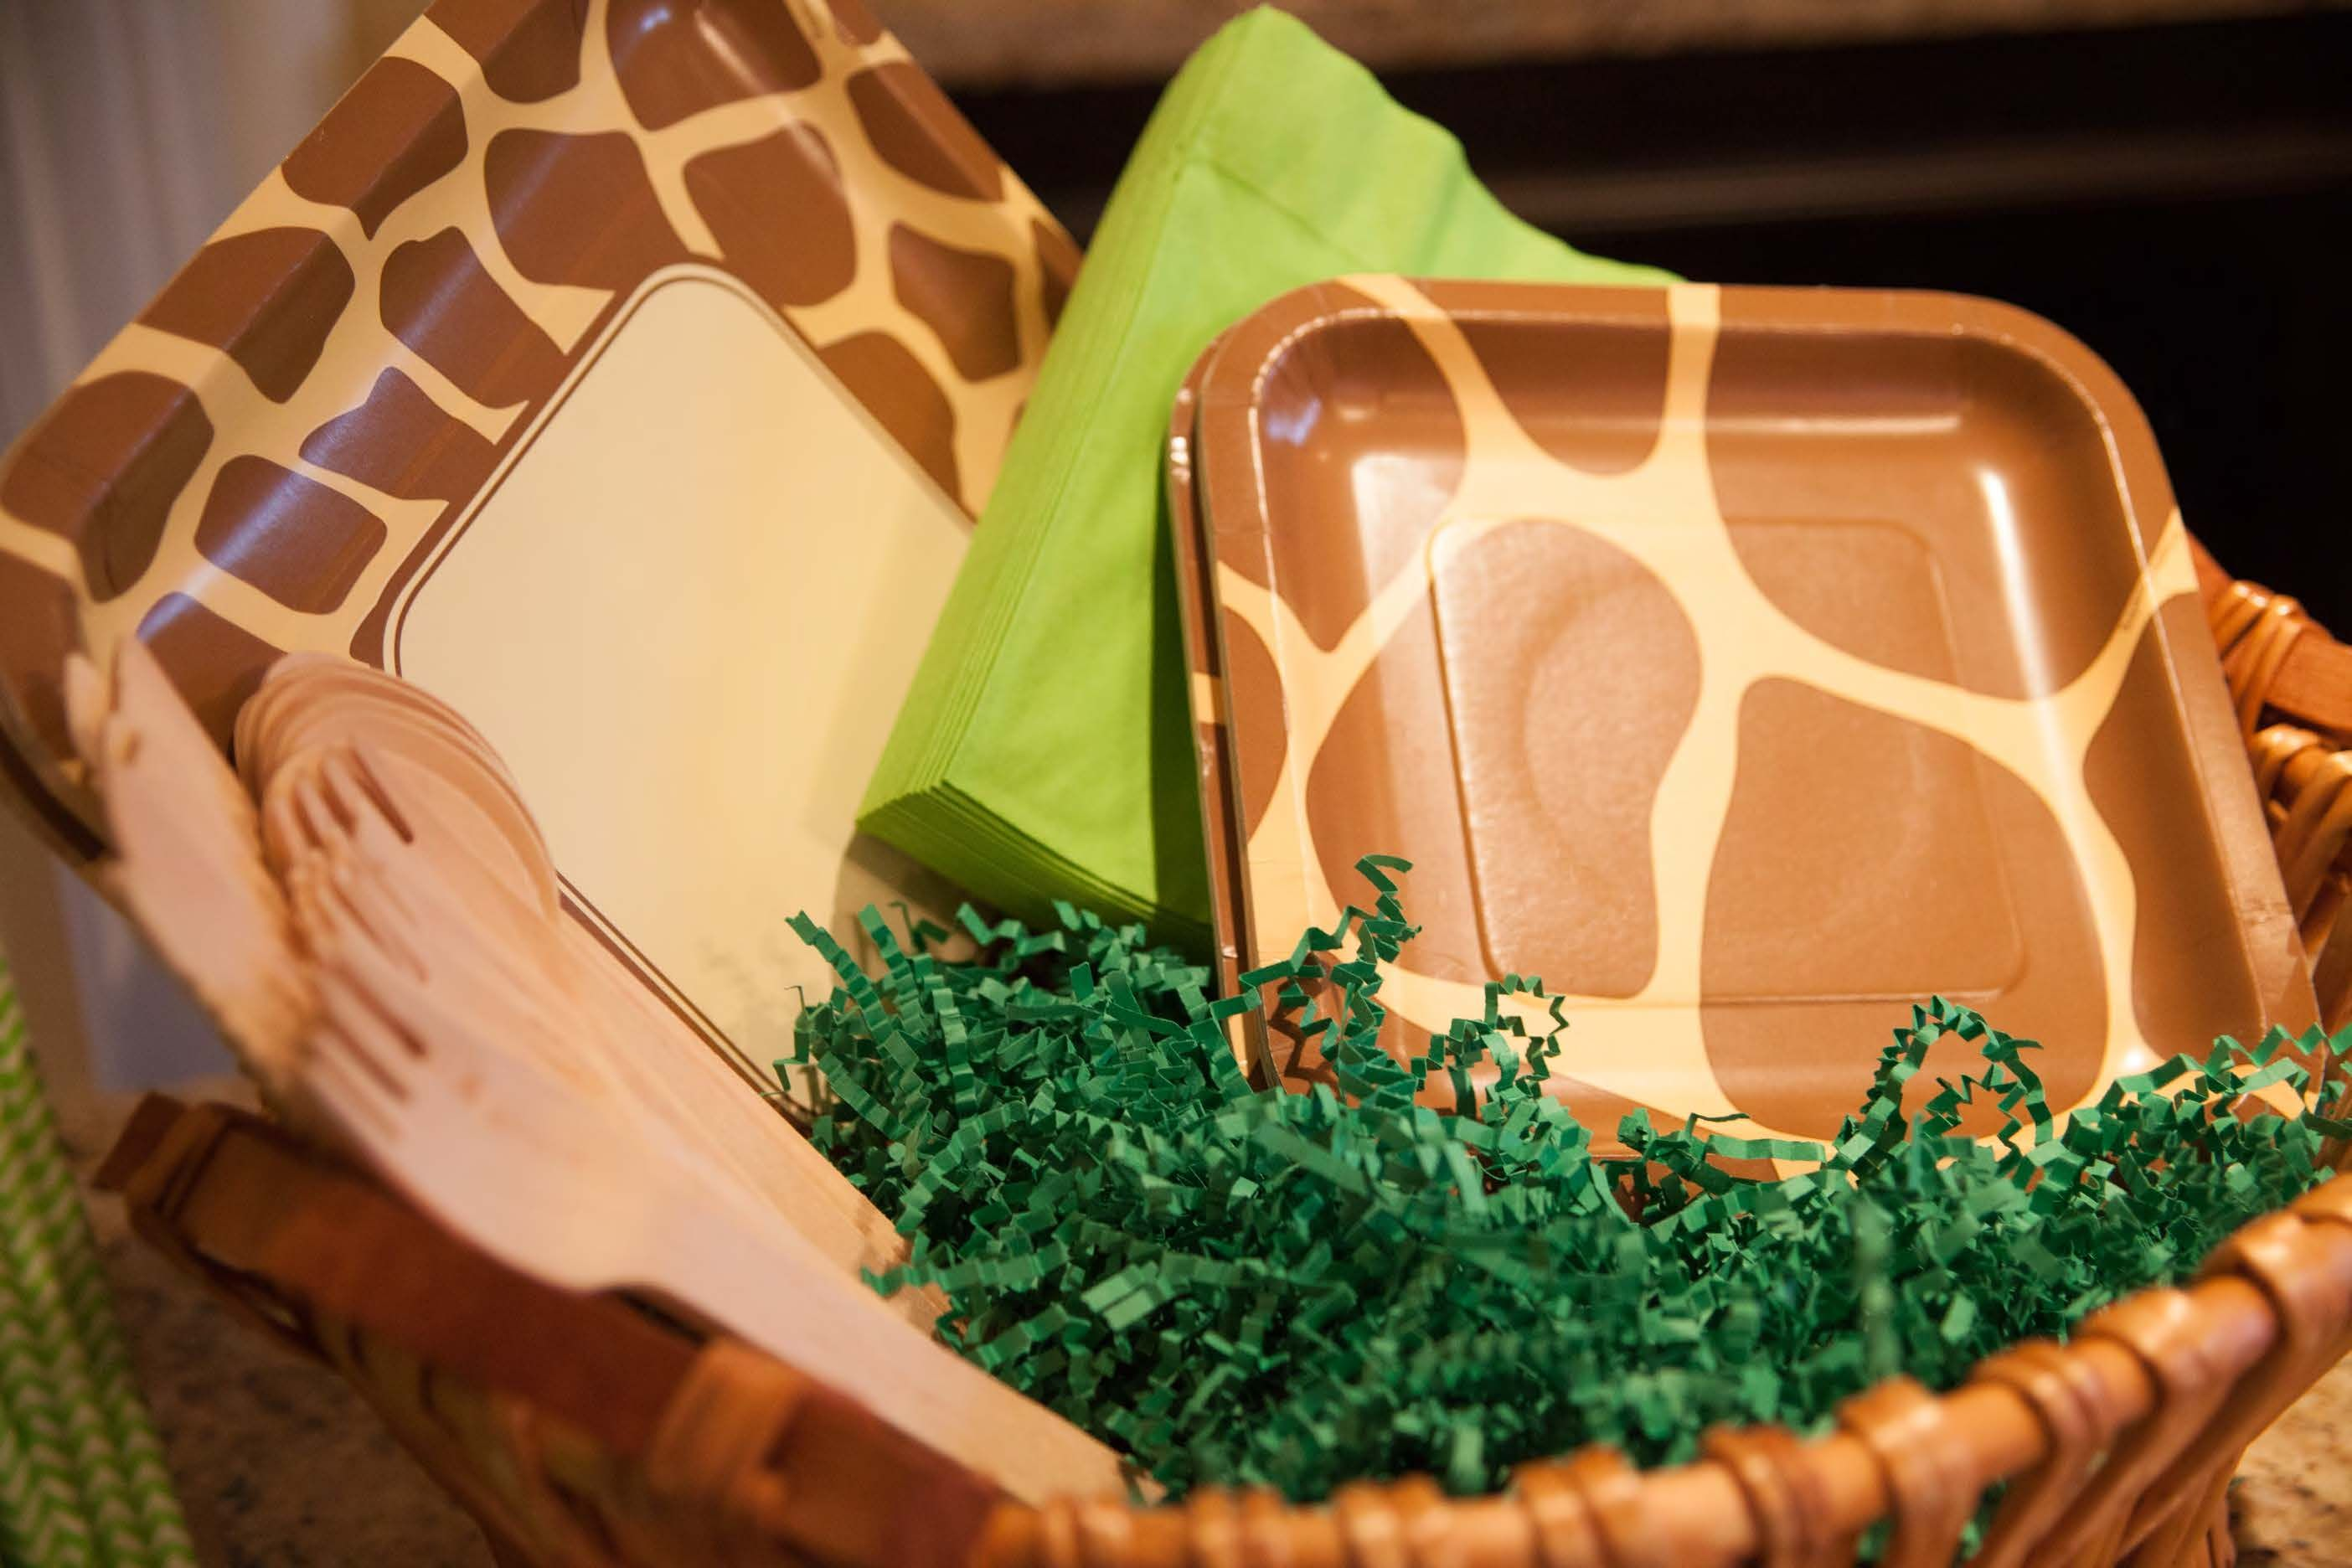 Paper grass (the kind used in Easter baskets) was perfect for ...